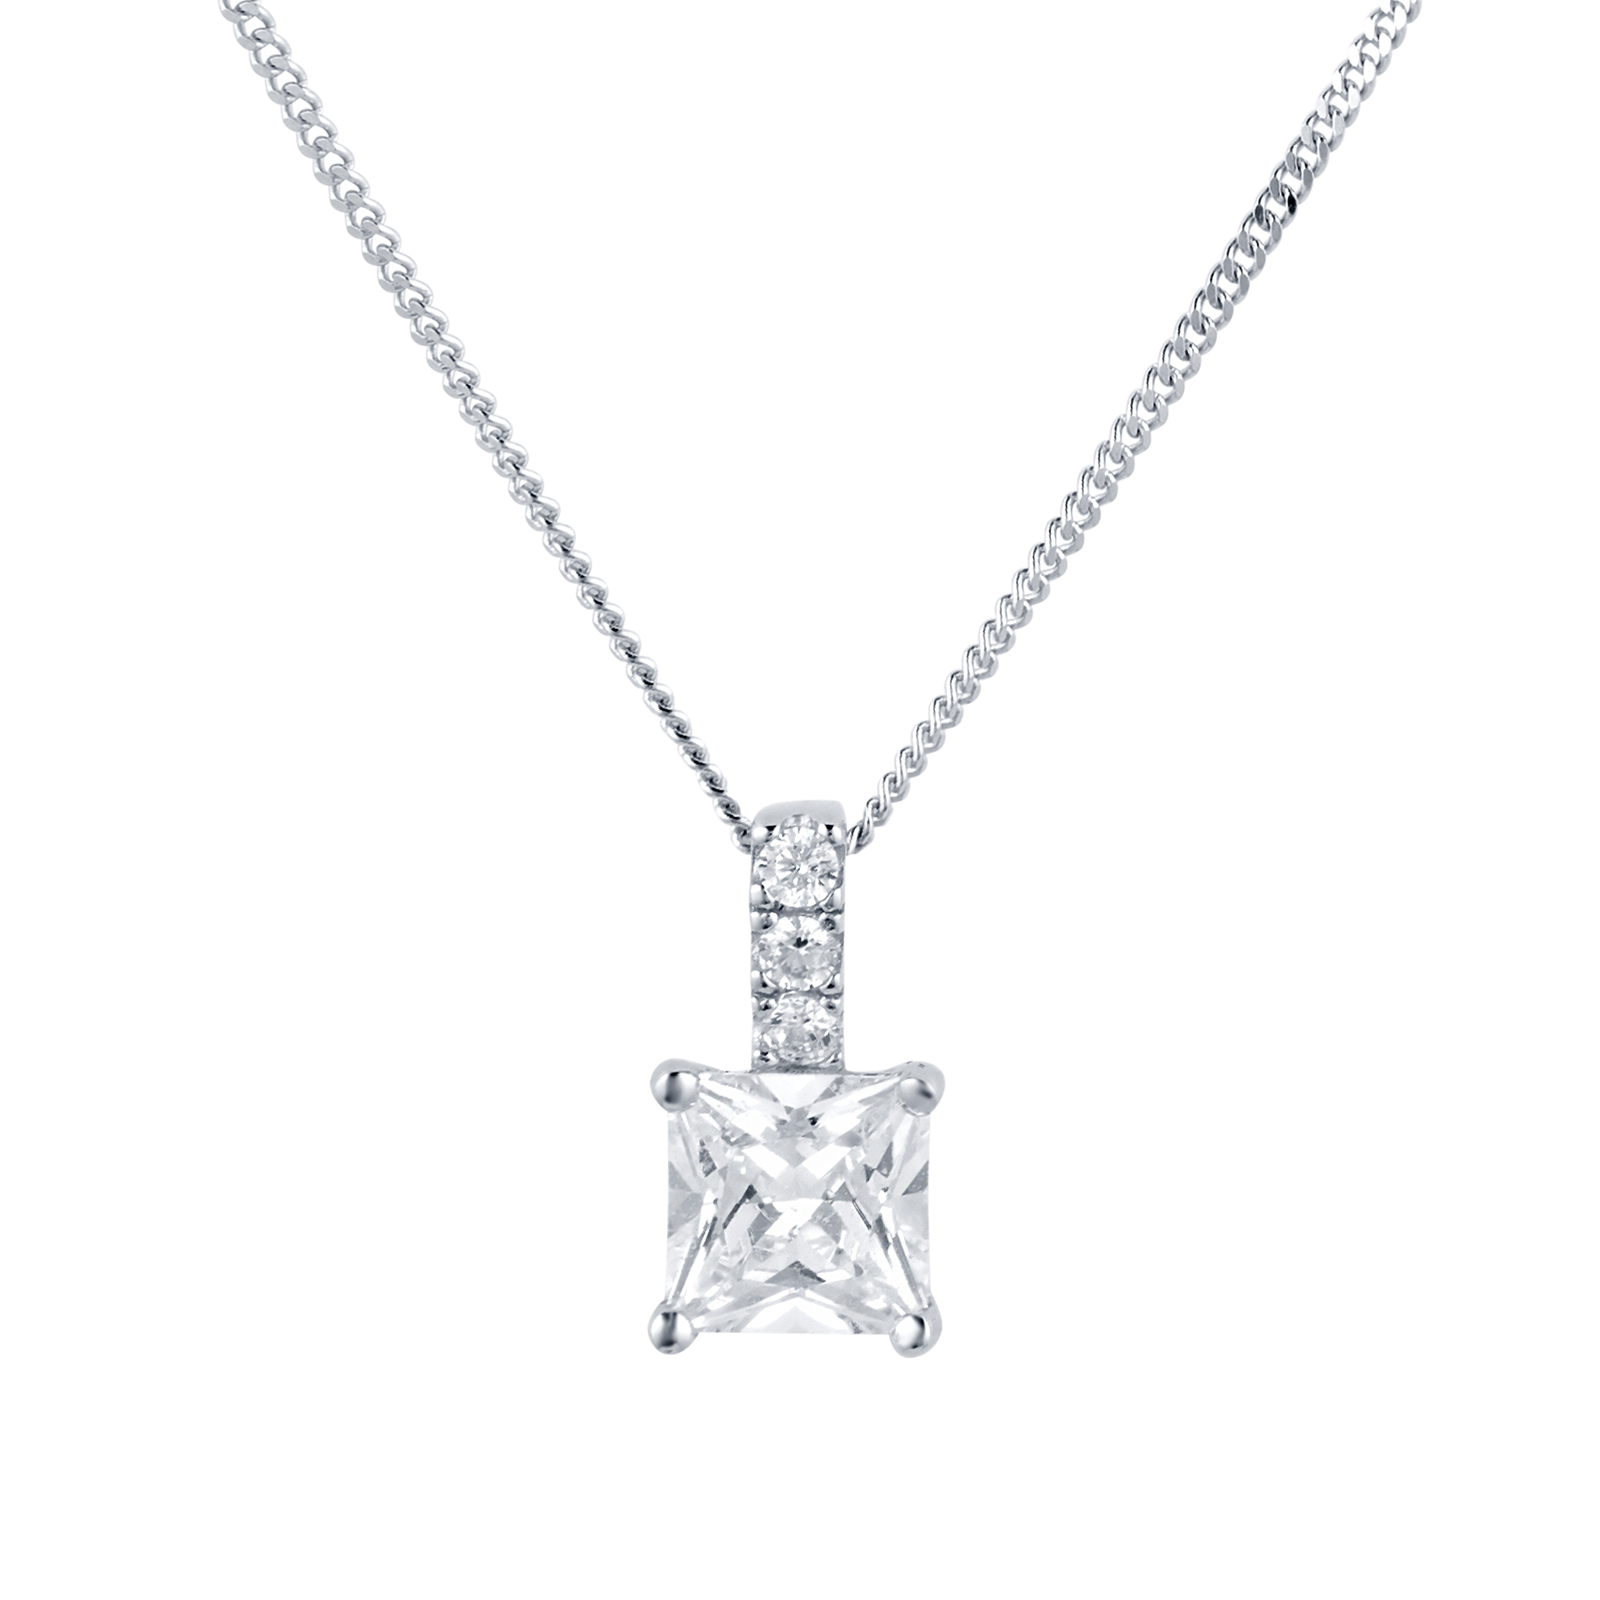 co main rsp pendant solitaire cubic necklace pdp clear silver online ivory at princess zirconia